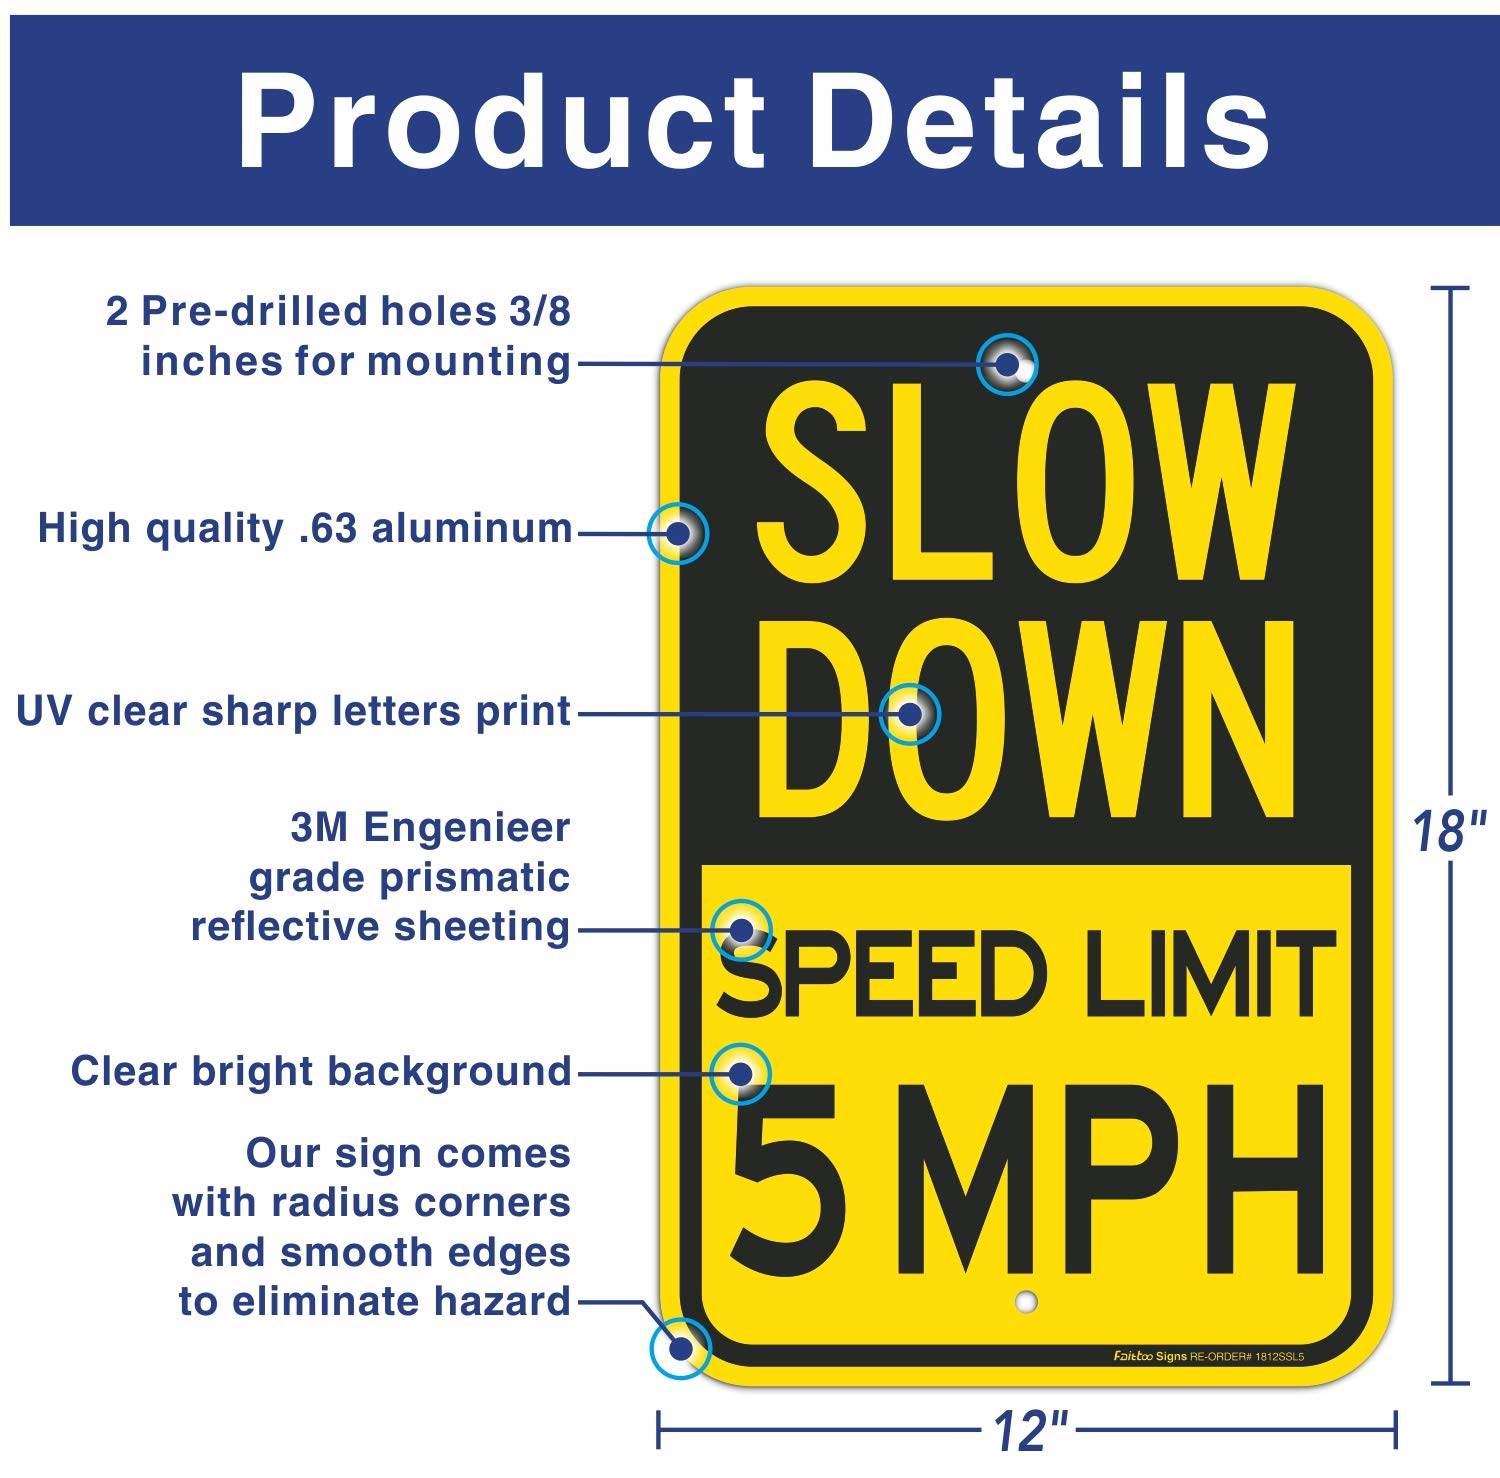 Waterproof Easy to Mount Slow Down Speed Limit 5 MPH Sign Rust Free Aluminum Traffic Sign,18 x 12 Inches Engineer Grade Reflective Sheeting 2 pack Durable Ink Slow Down Sign Weather Resistant